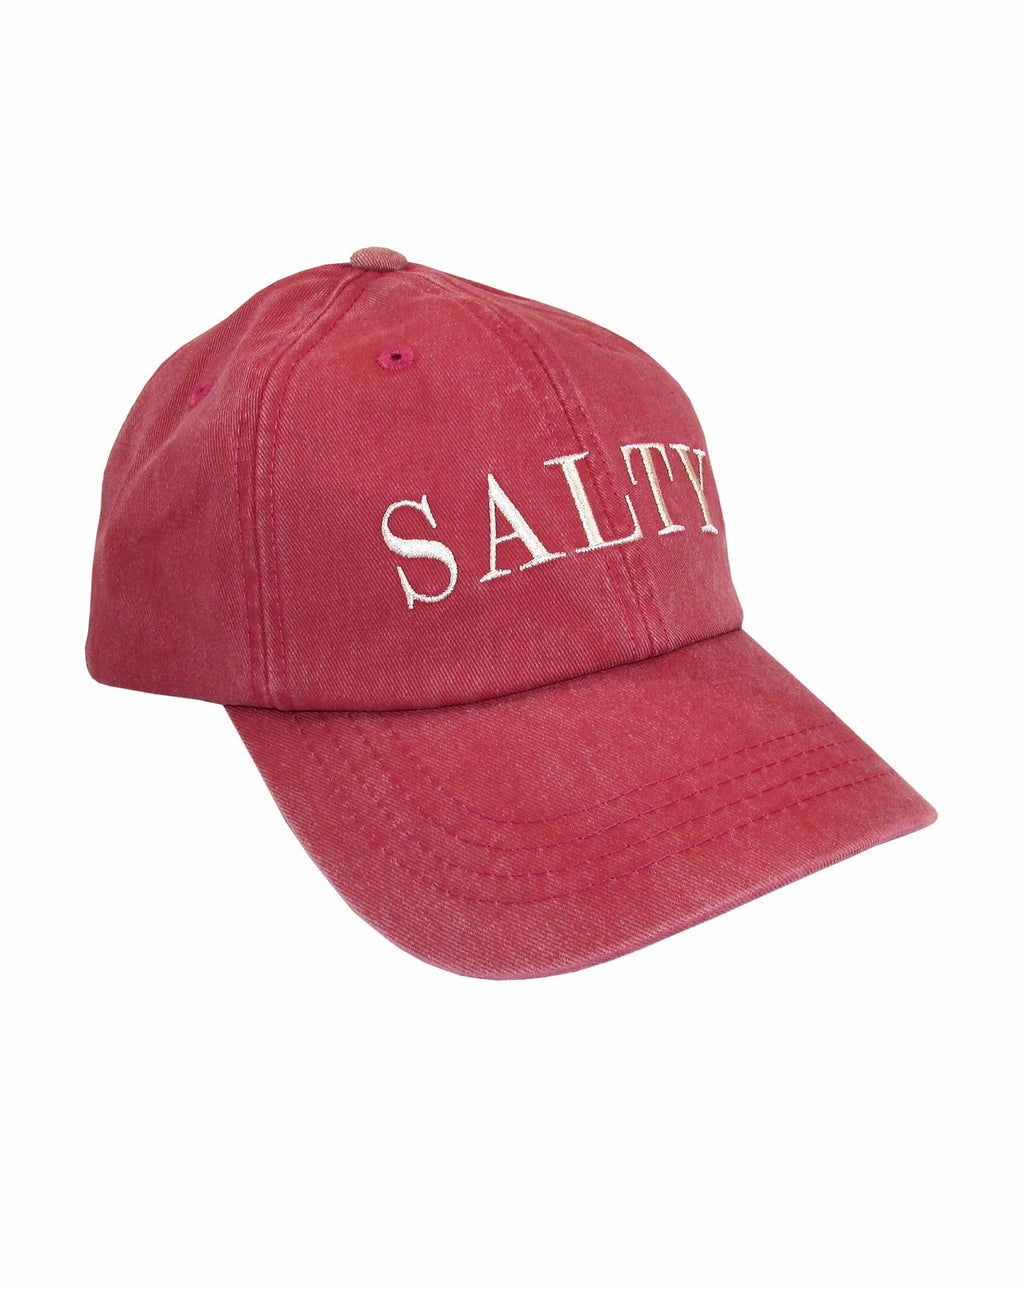 Ocean Addict Vintage Cap - SALTY - dolly mama boutique